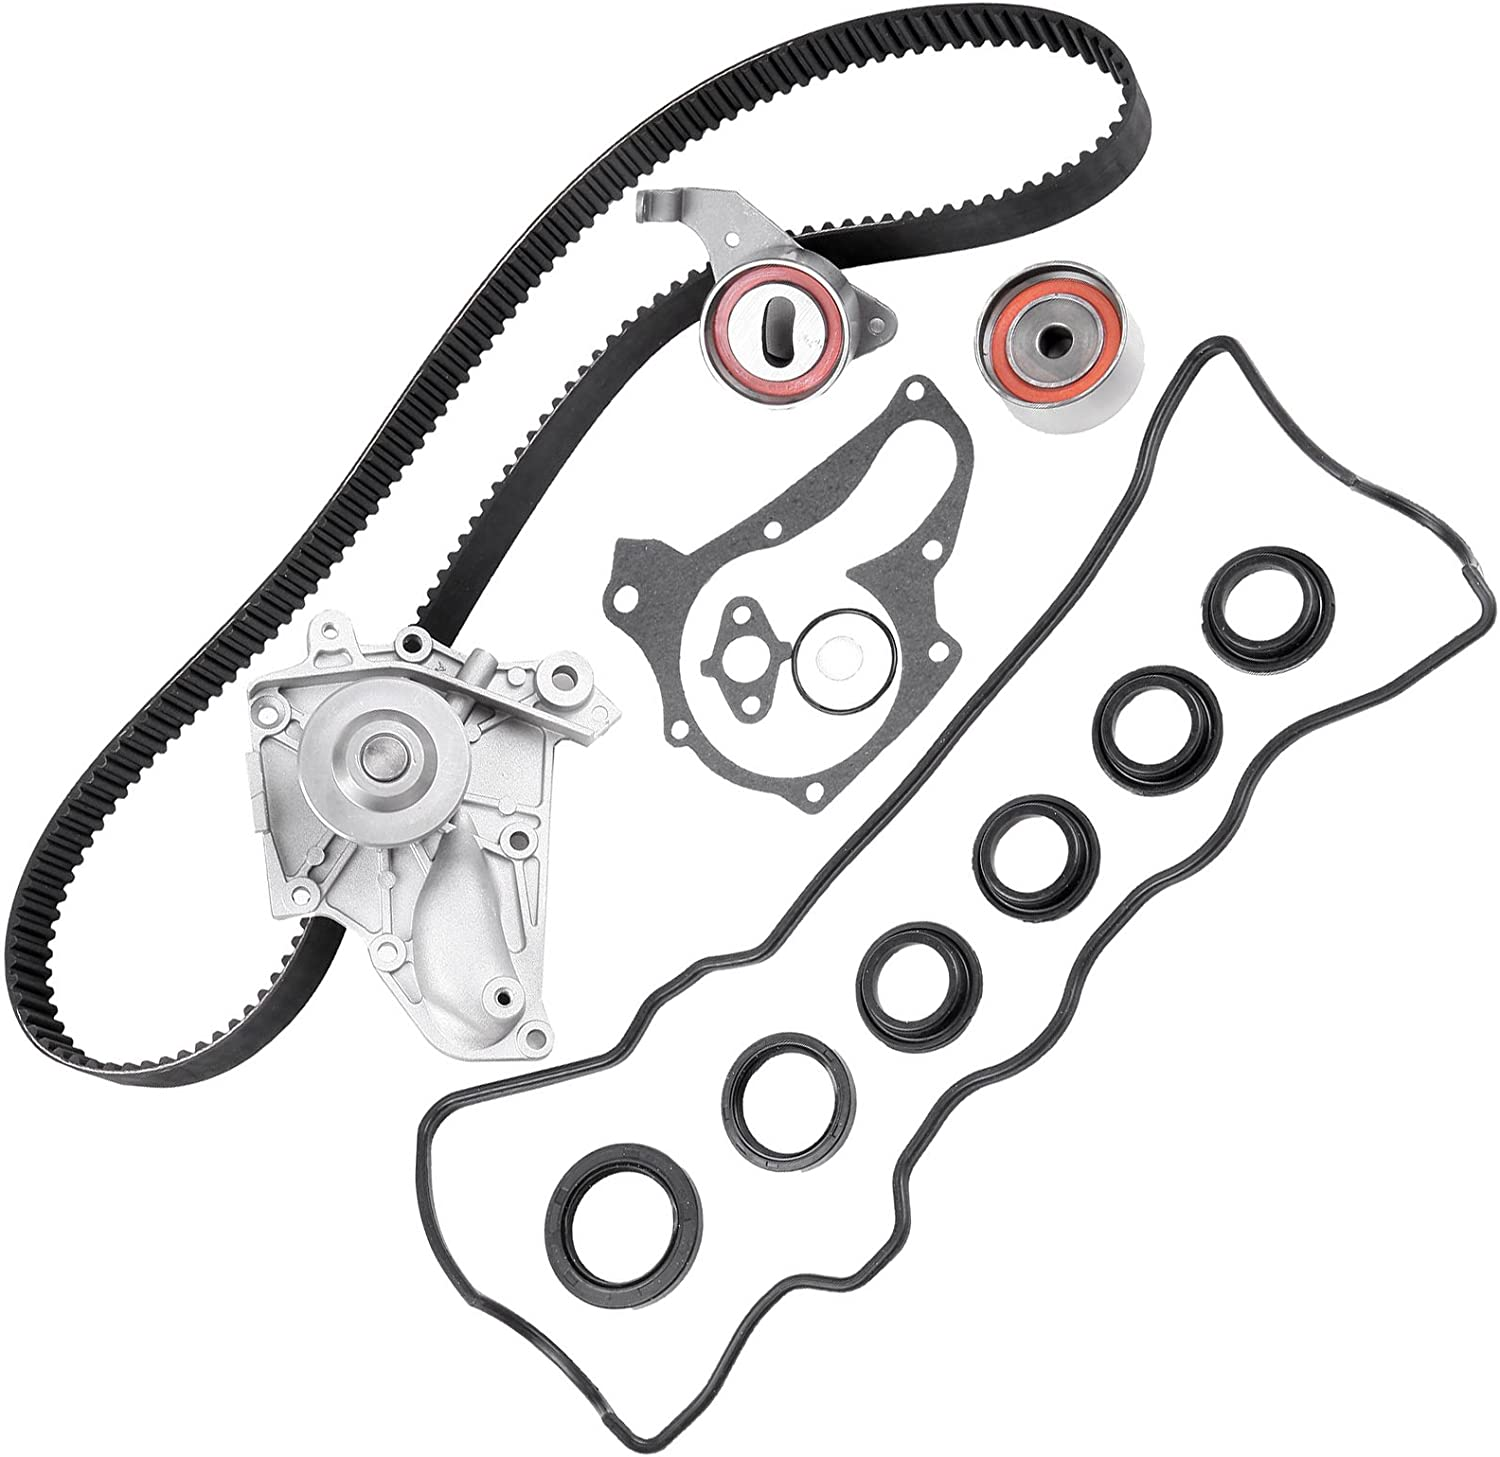 Timing Belt Kit including timing Belt water pump with gasket tensioner bearing etc,OCPTY Compatible for 94 95 96 97 98 99 00 01 Fit for LEXUS ES300